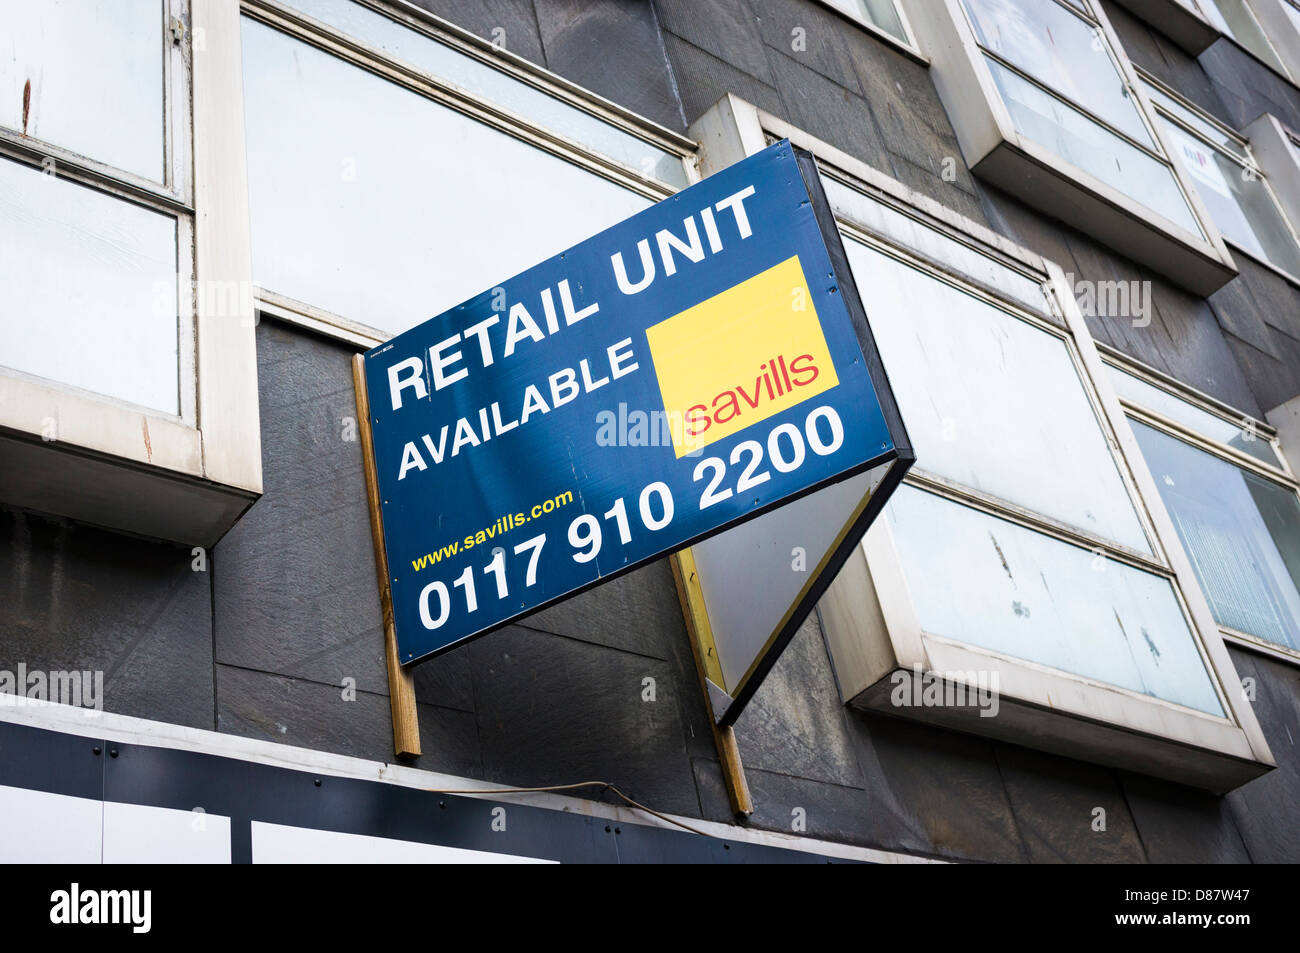 Commercial retail unit to let sign on a town centre building, England, UK - Stock Image